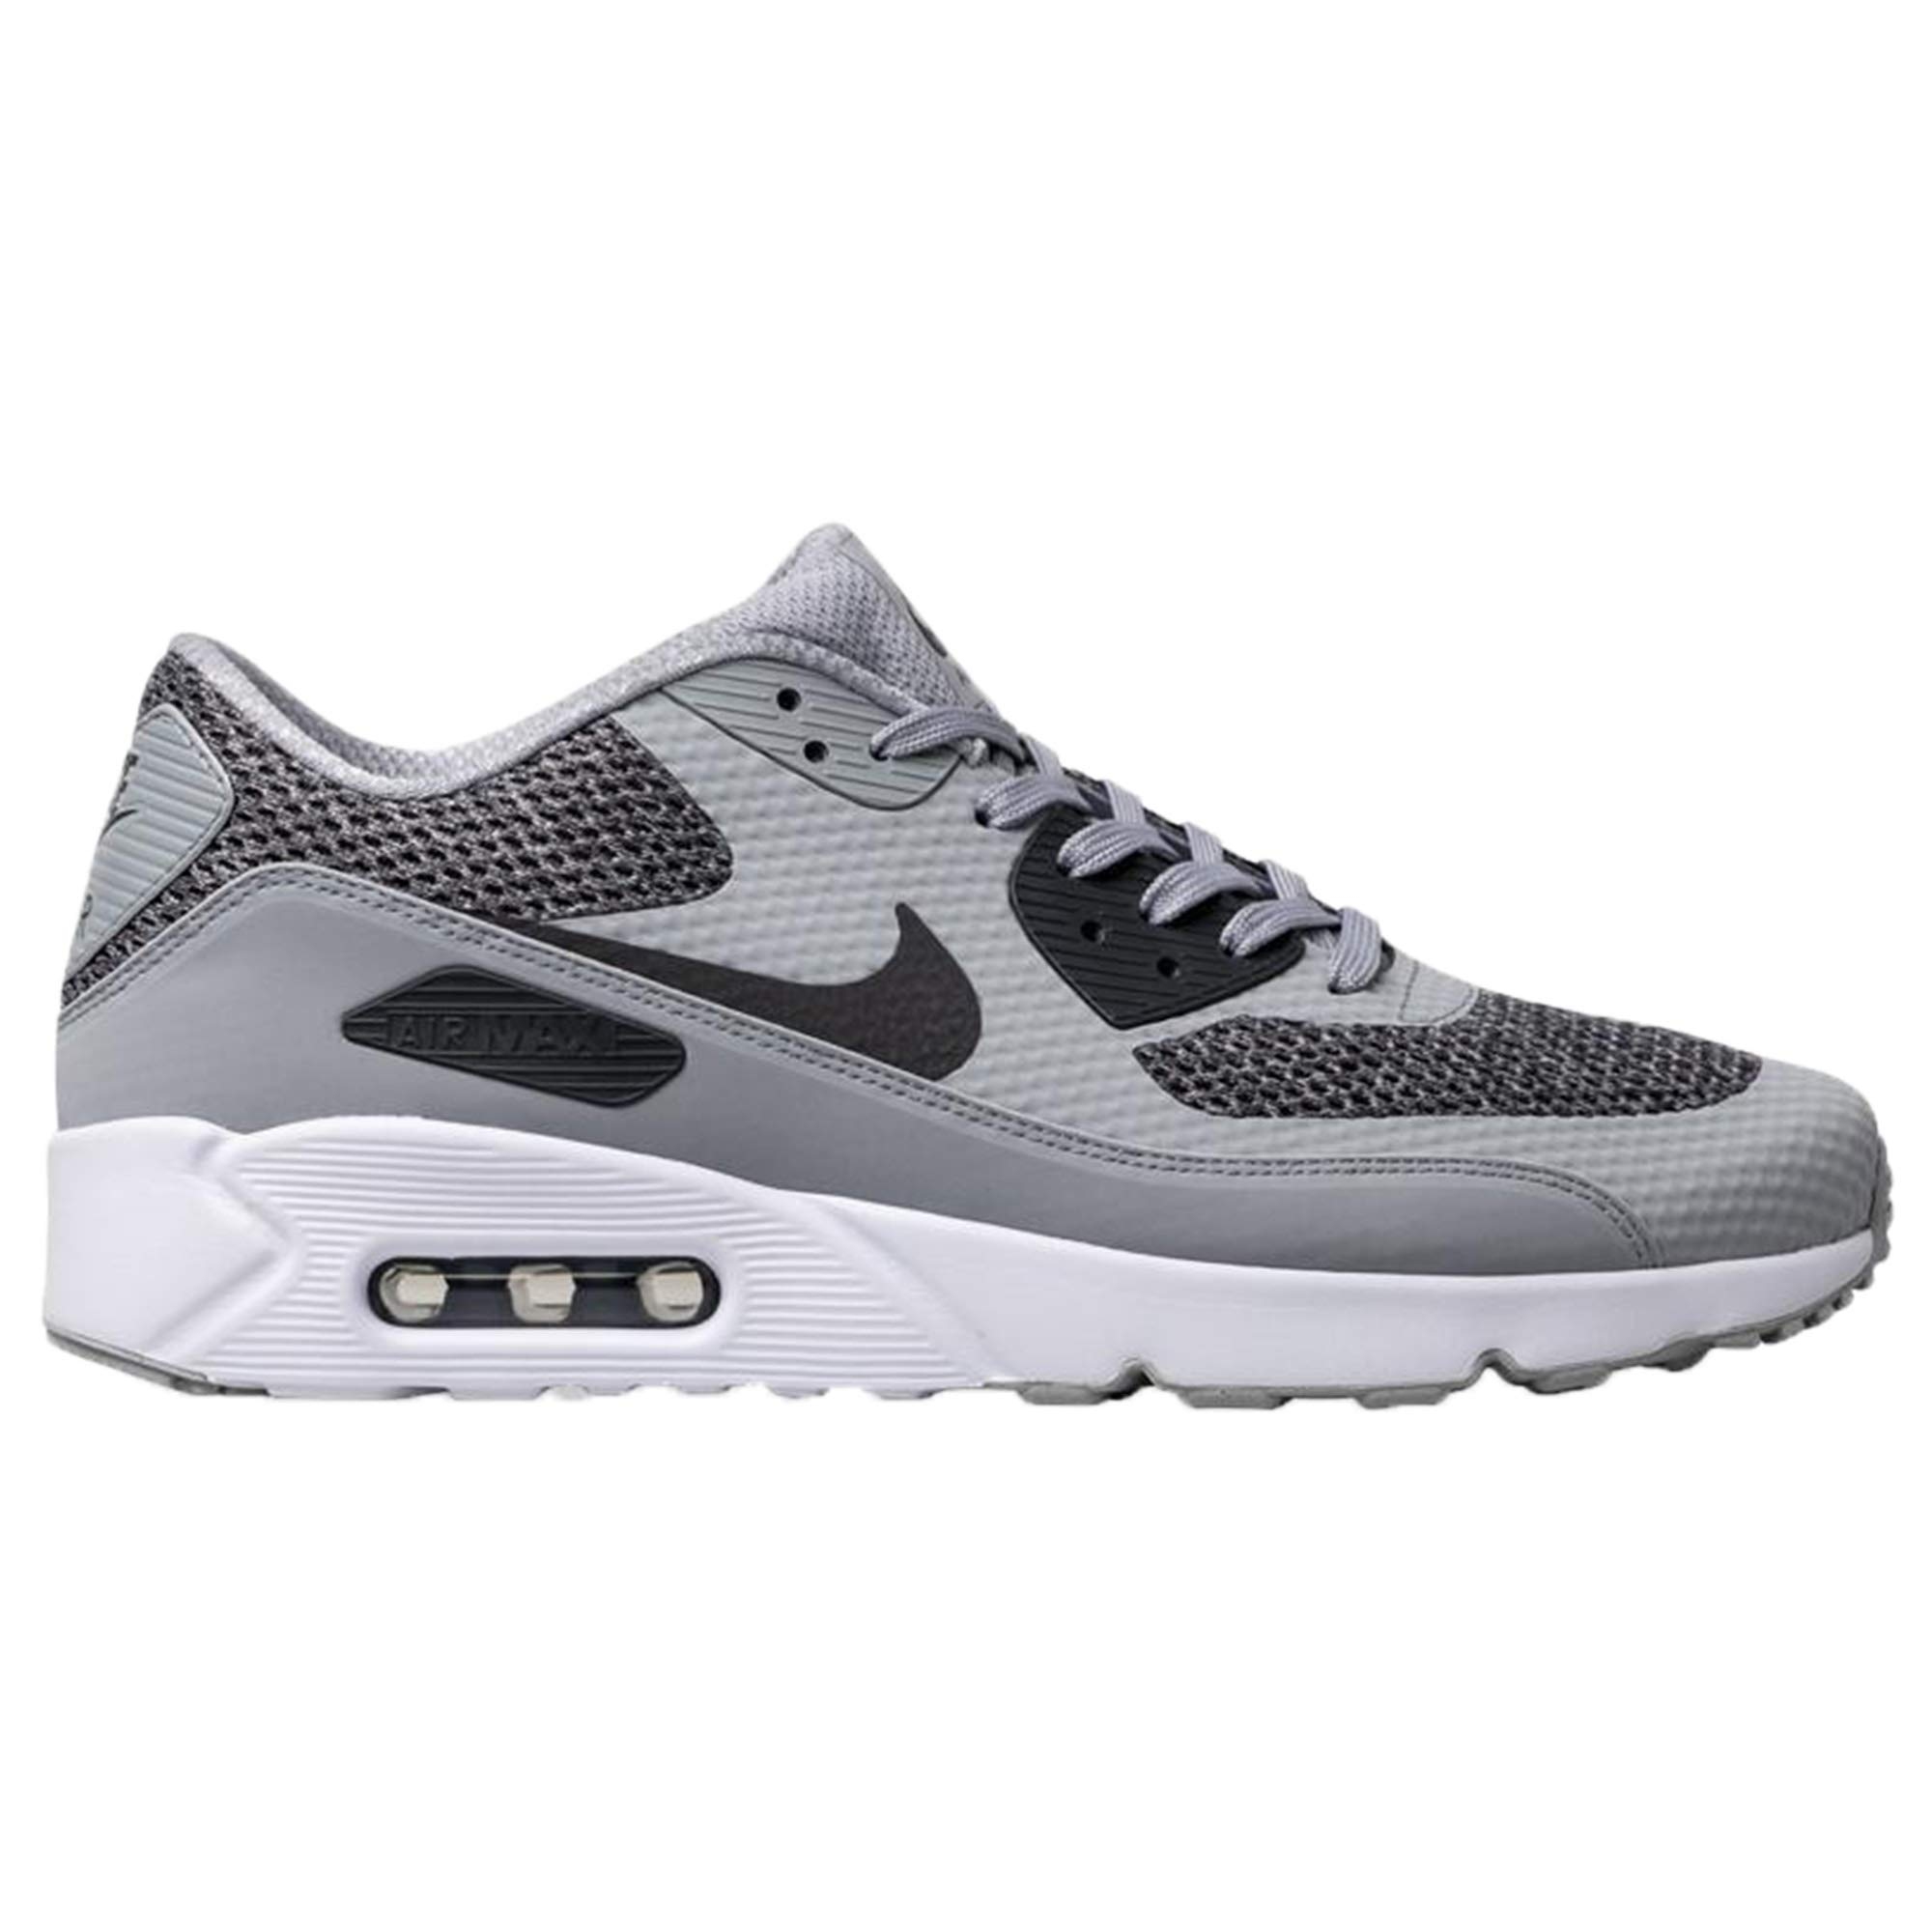 2518e487c7fd Galleon - Nike Air Max 90 Ultra 2.0 Essential Mens Style   875695-020 Size    10 M US